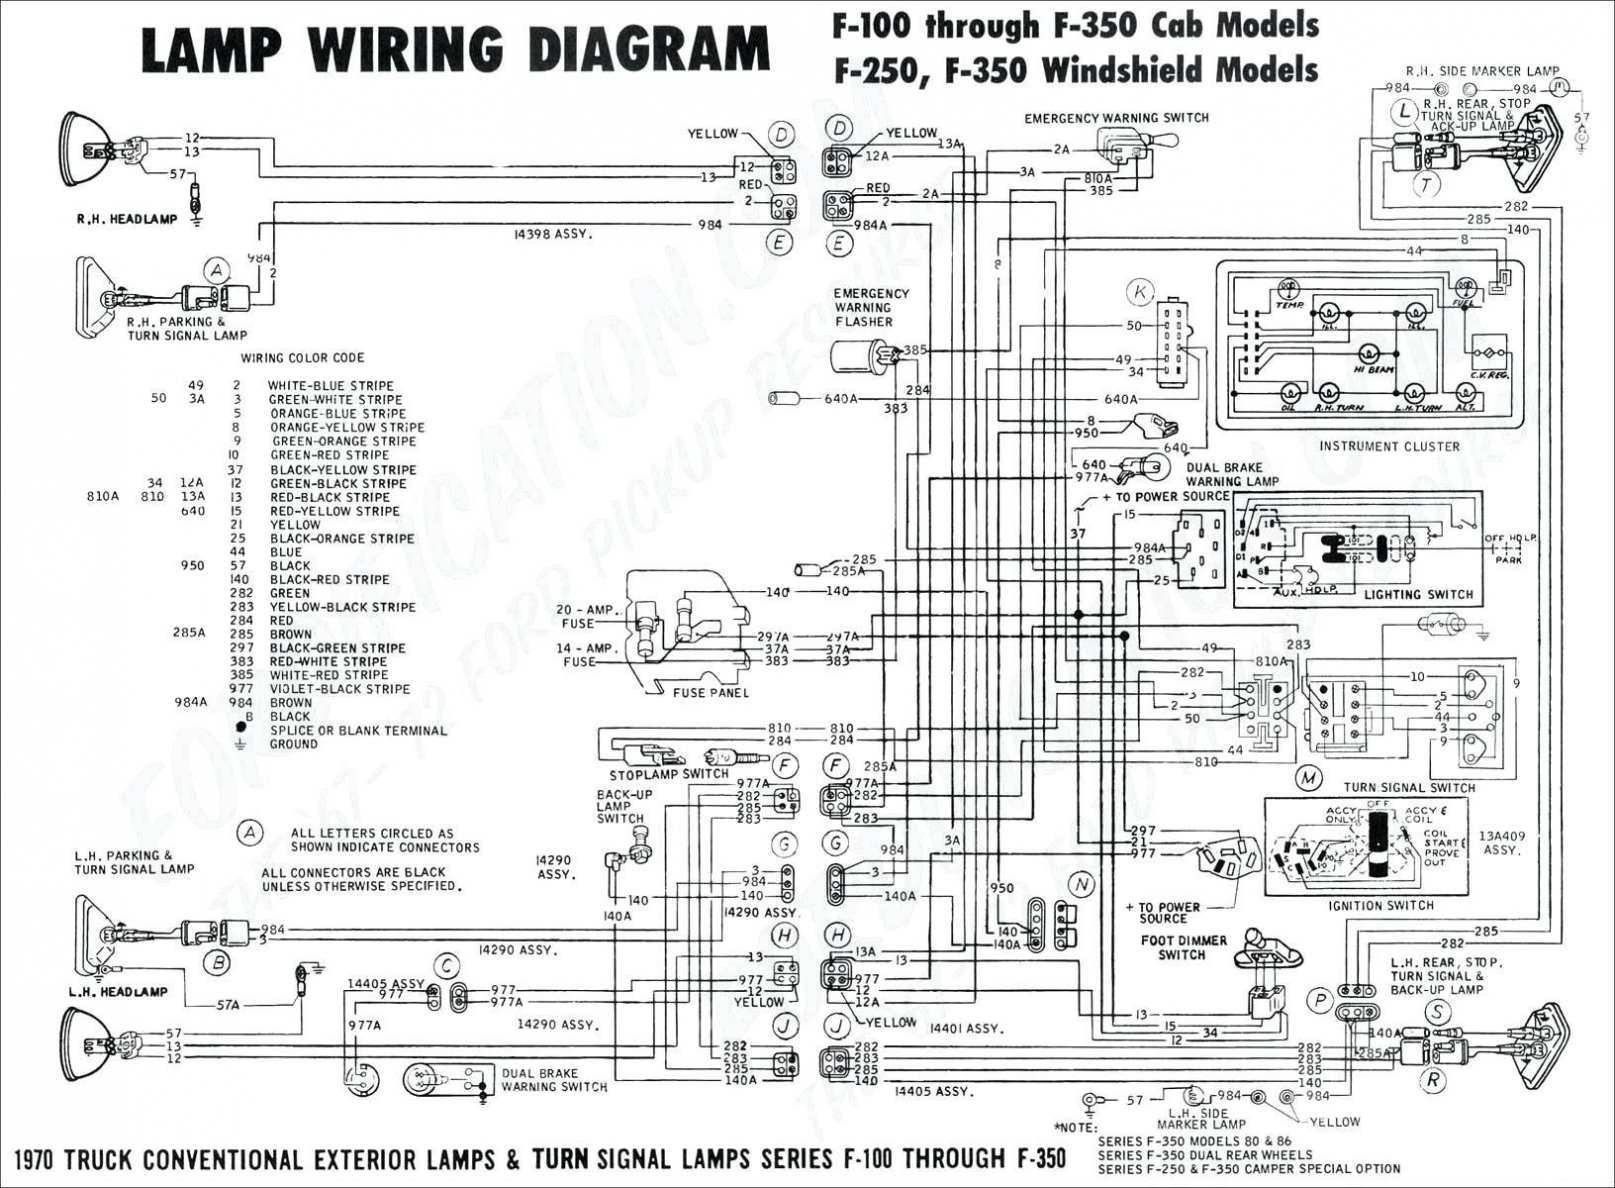 hight resolution of diagram also ford f 150 thermostat location moreover mercury wiring location furthermore 1997 ford f 150 fuse diagram also 1997 ford f 150